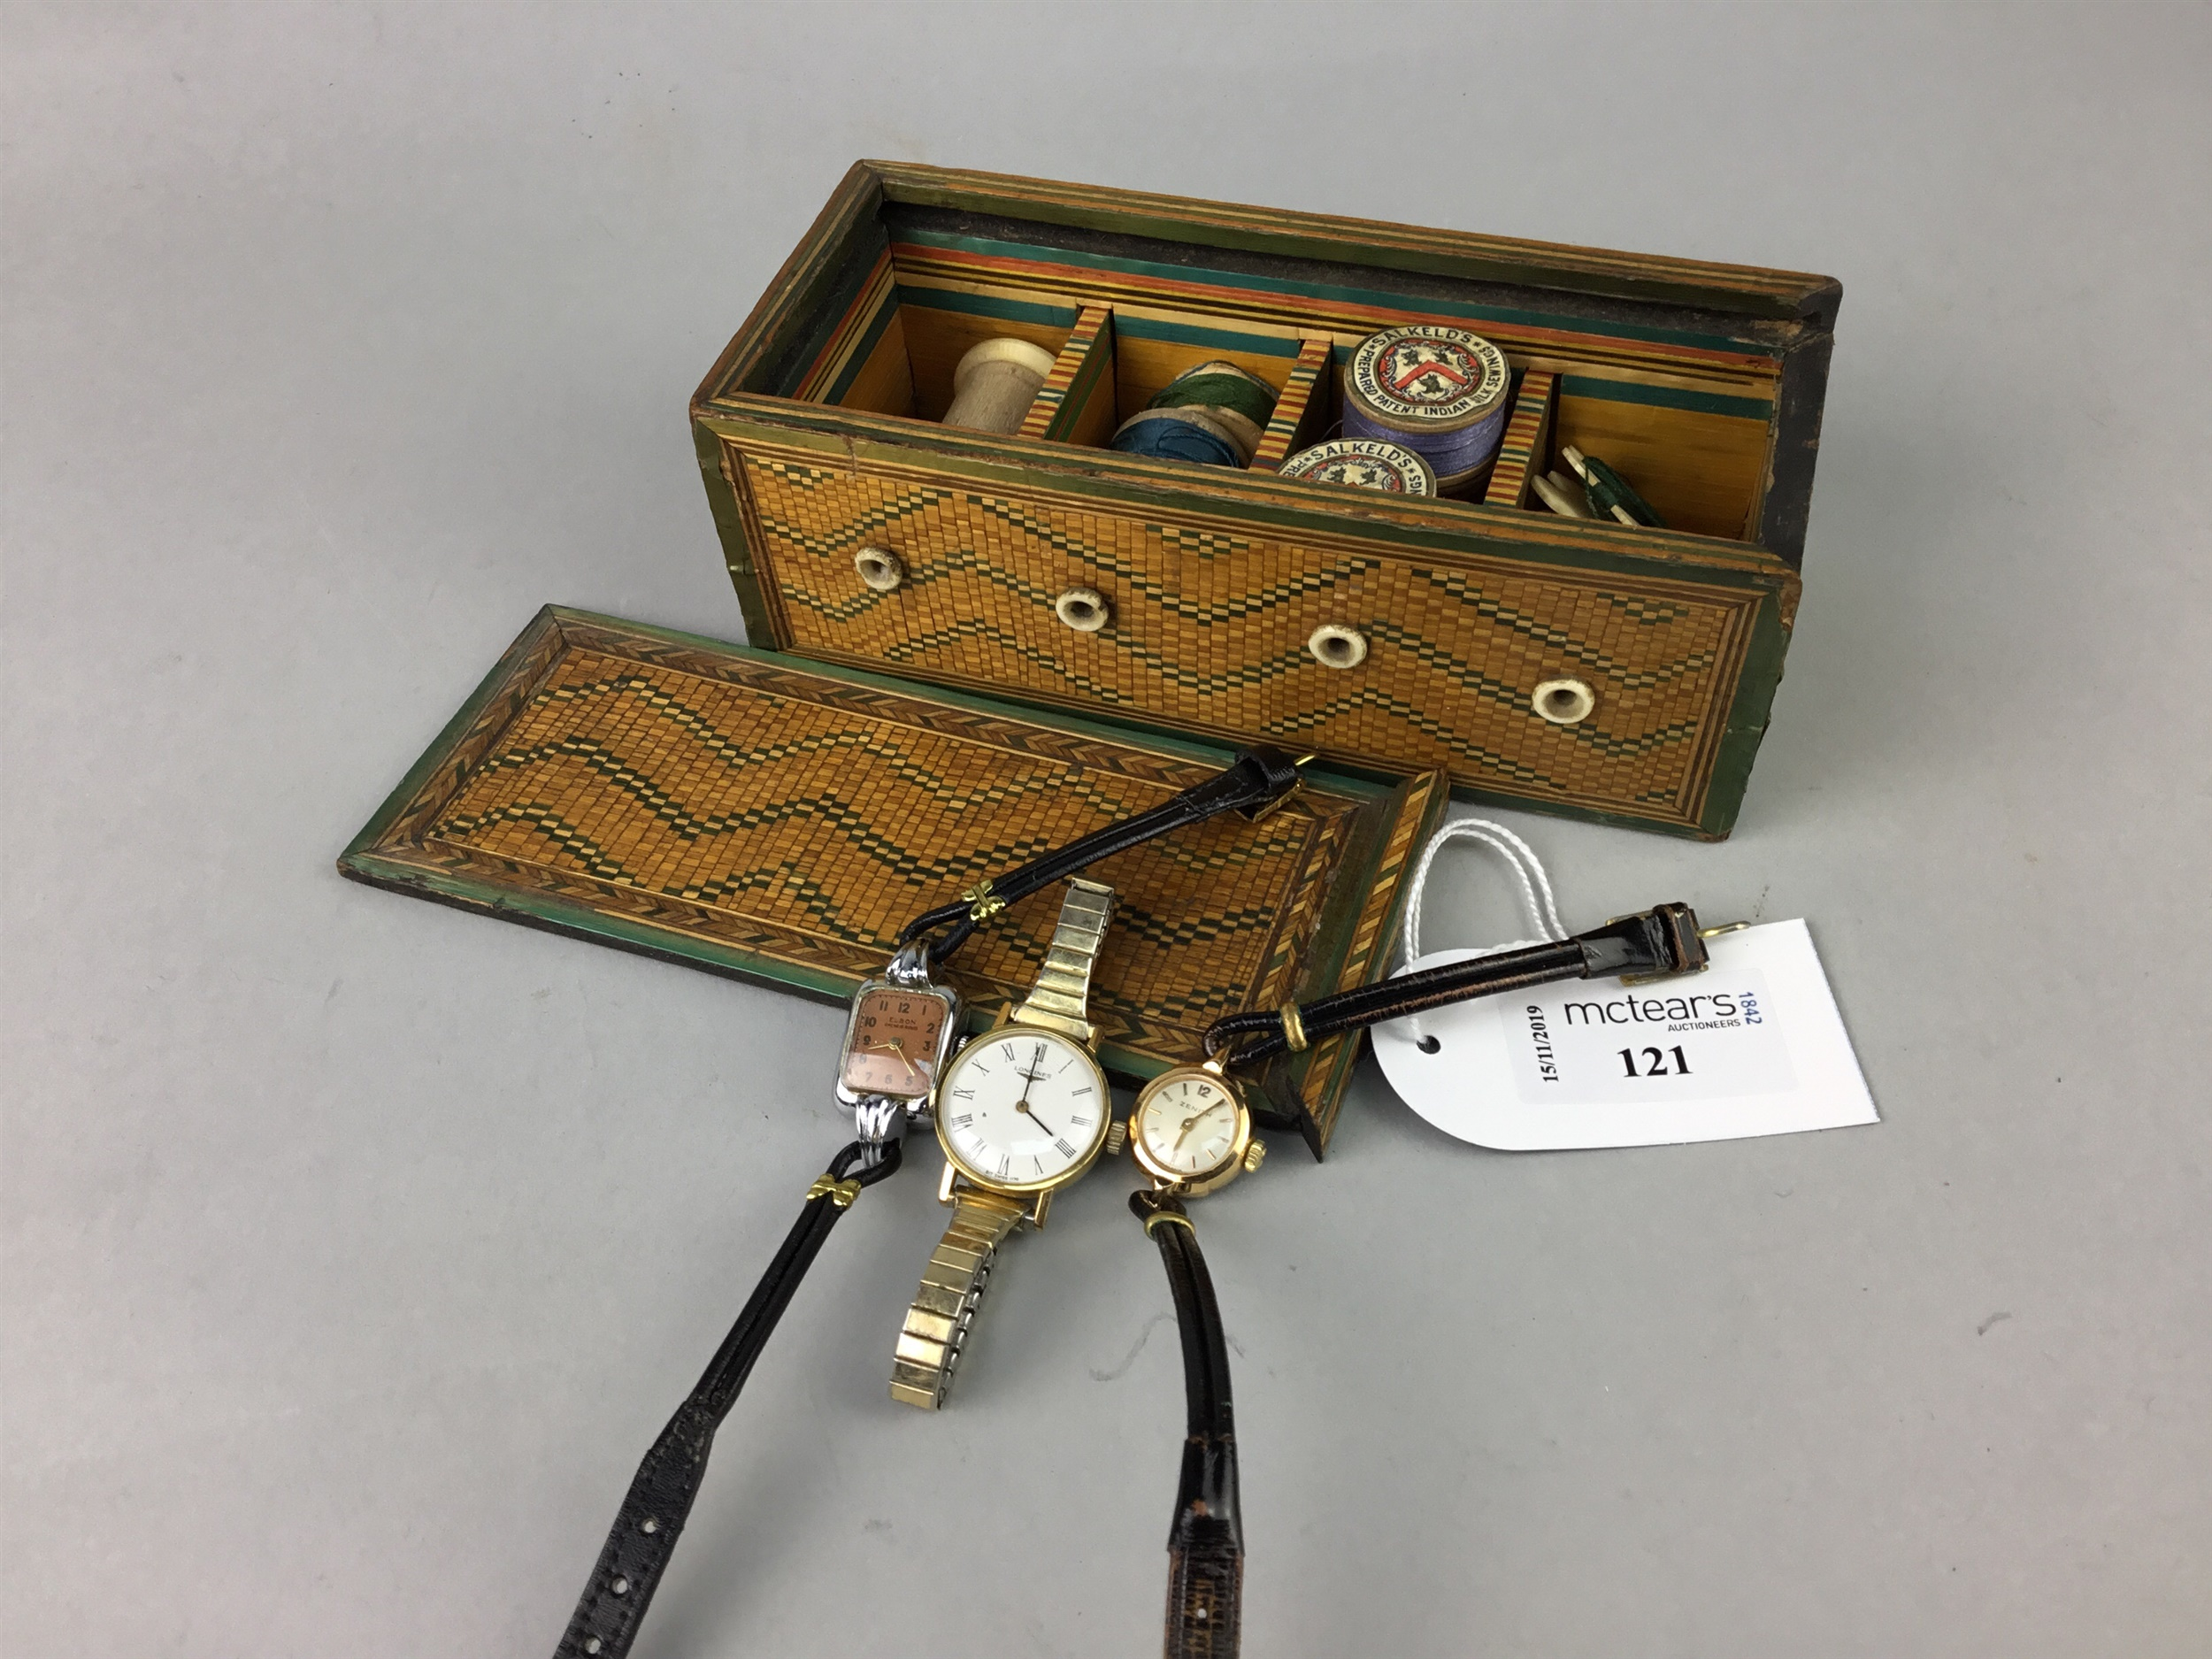 Lot 121 - A 19TH CENTURY STRING/THREAD BOX, THREE WATCHES AND OTHER BOXES